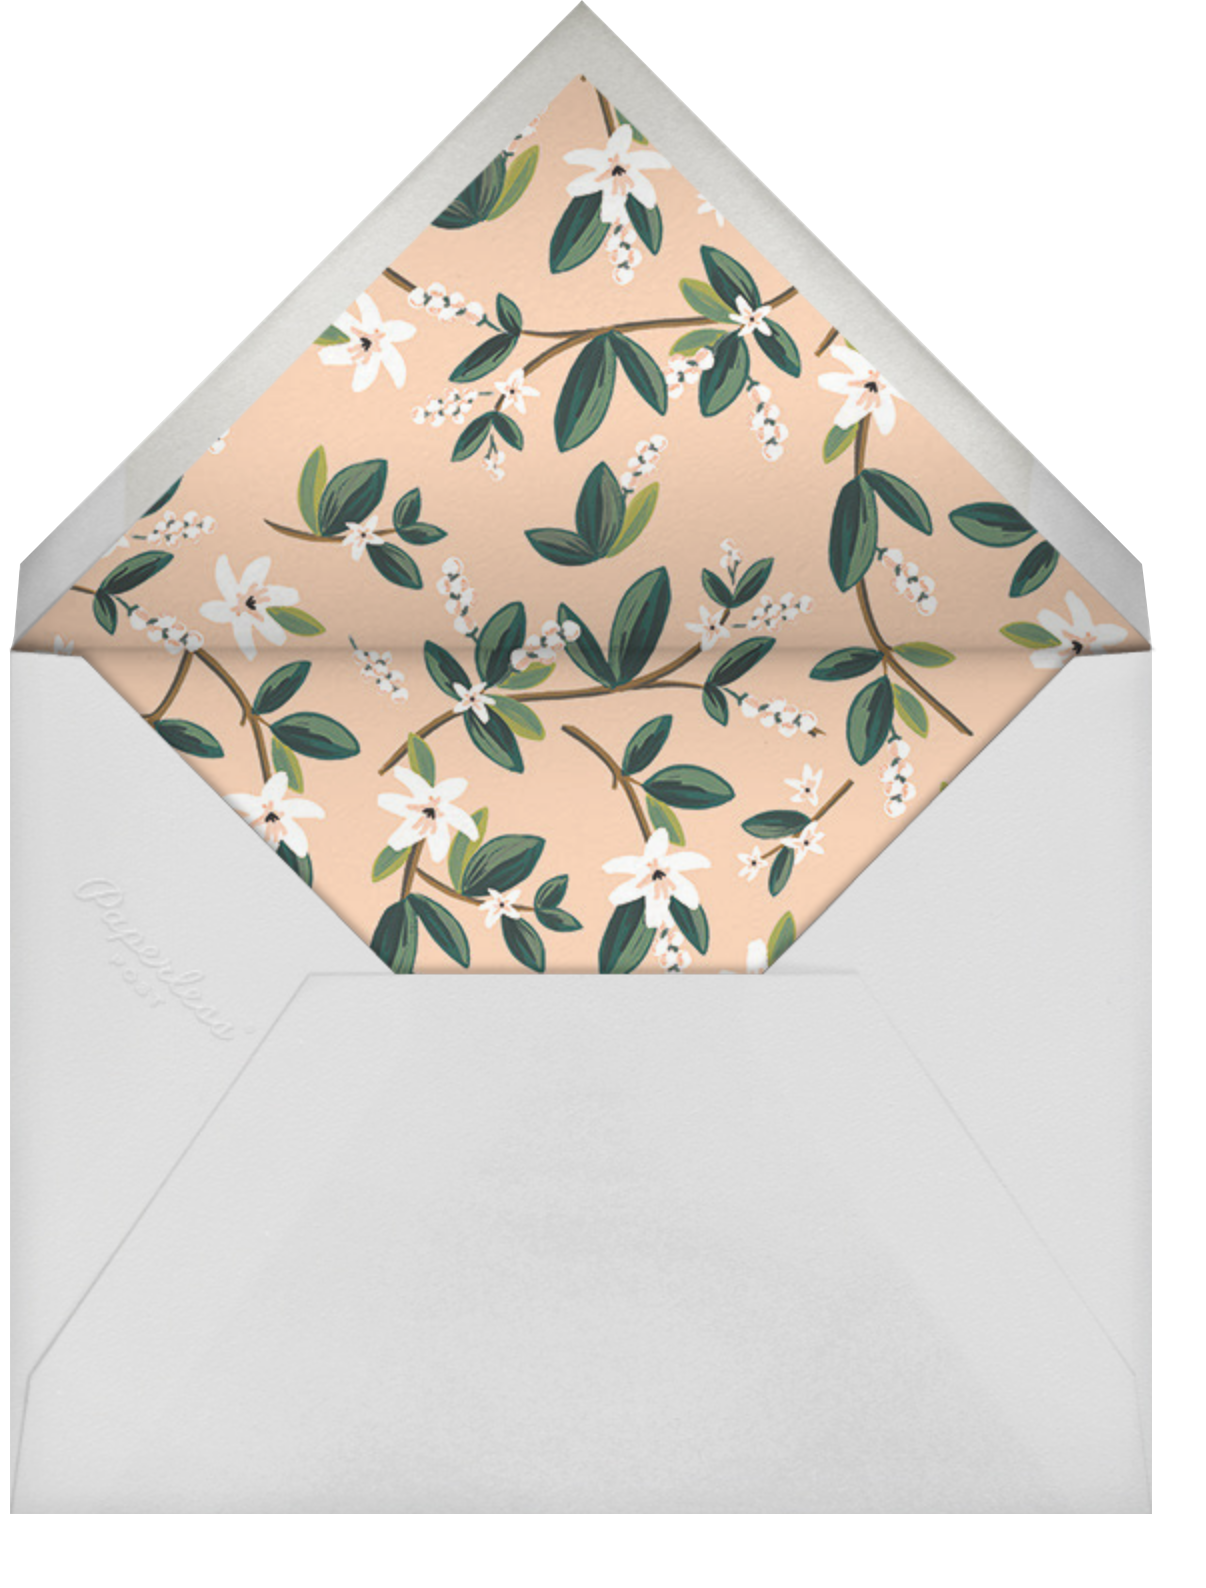 November Herbarium - Rifle Paper Co. - Bridal shower - envelope back